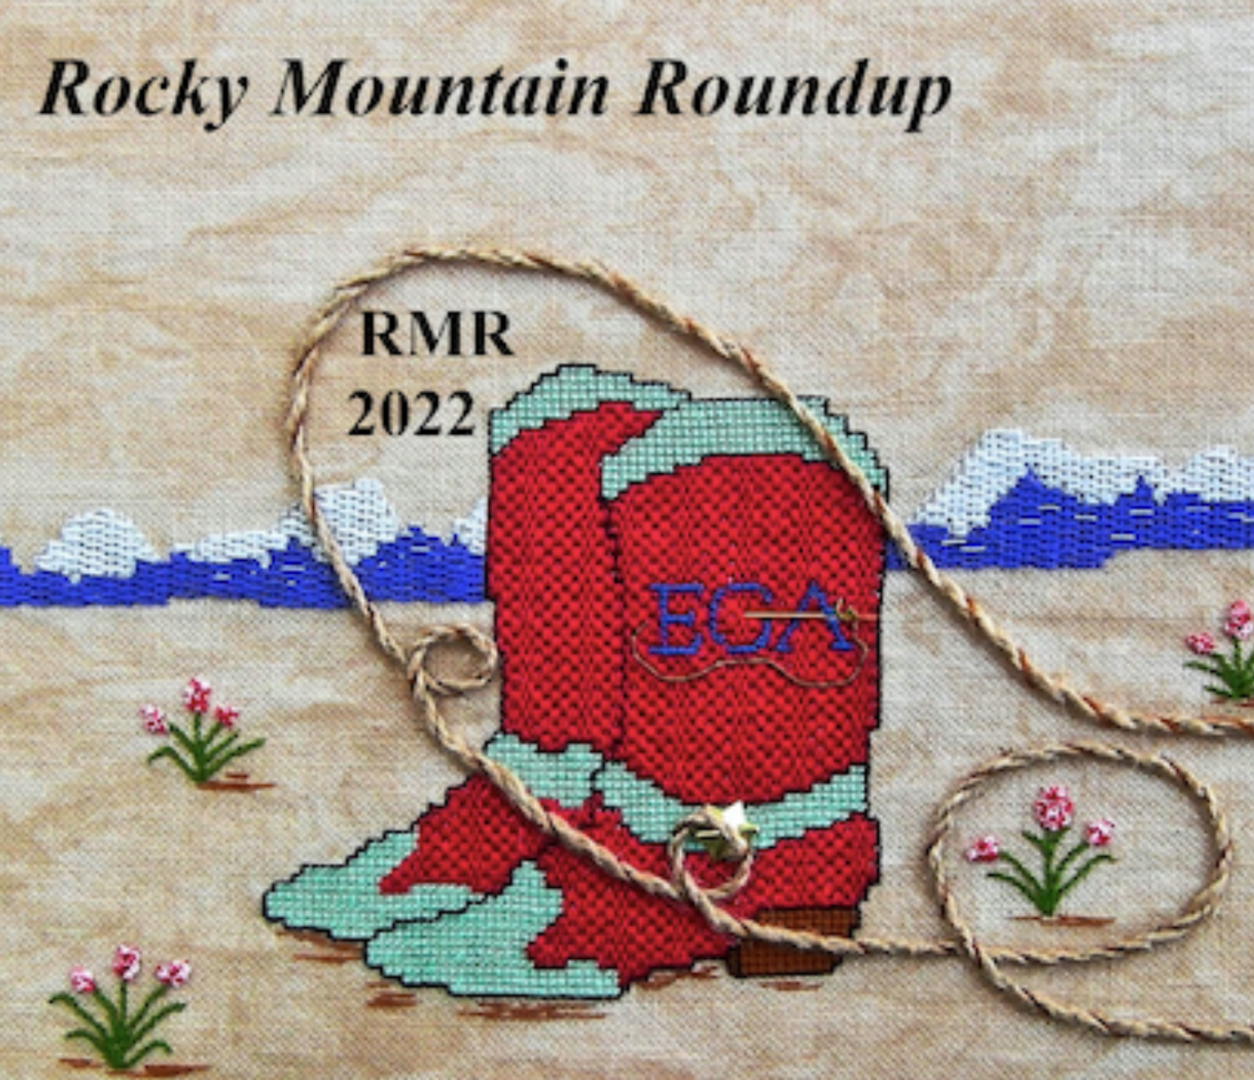 Rocky Mountain Region Seminar: Rocky Mountain Roundup